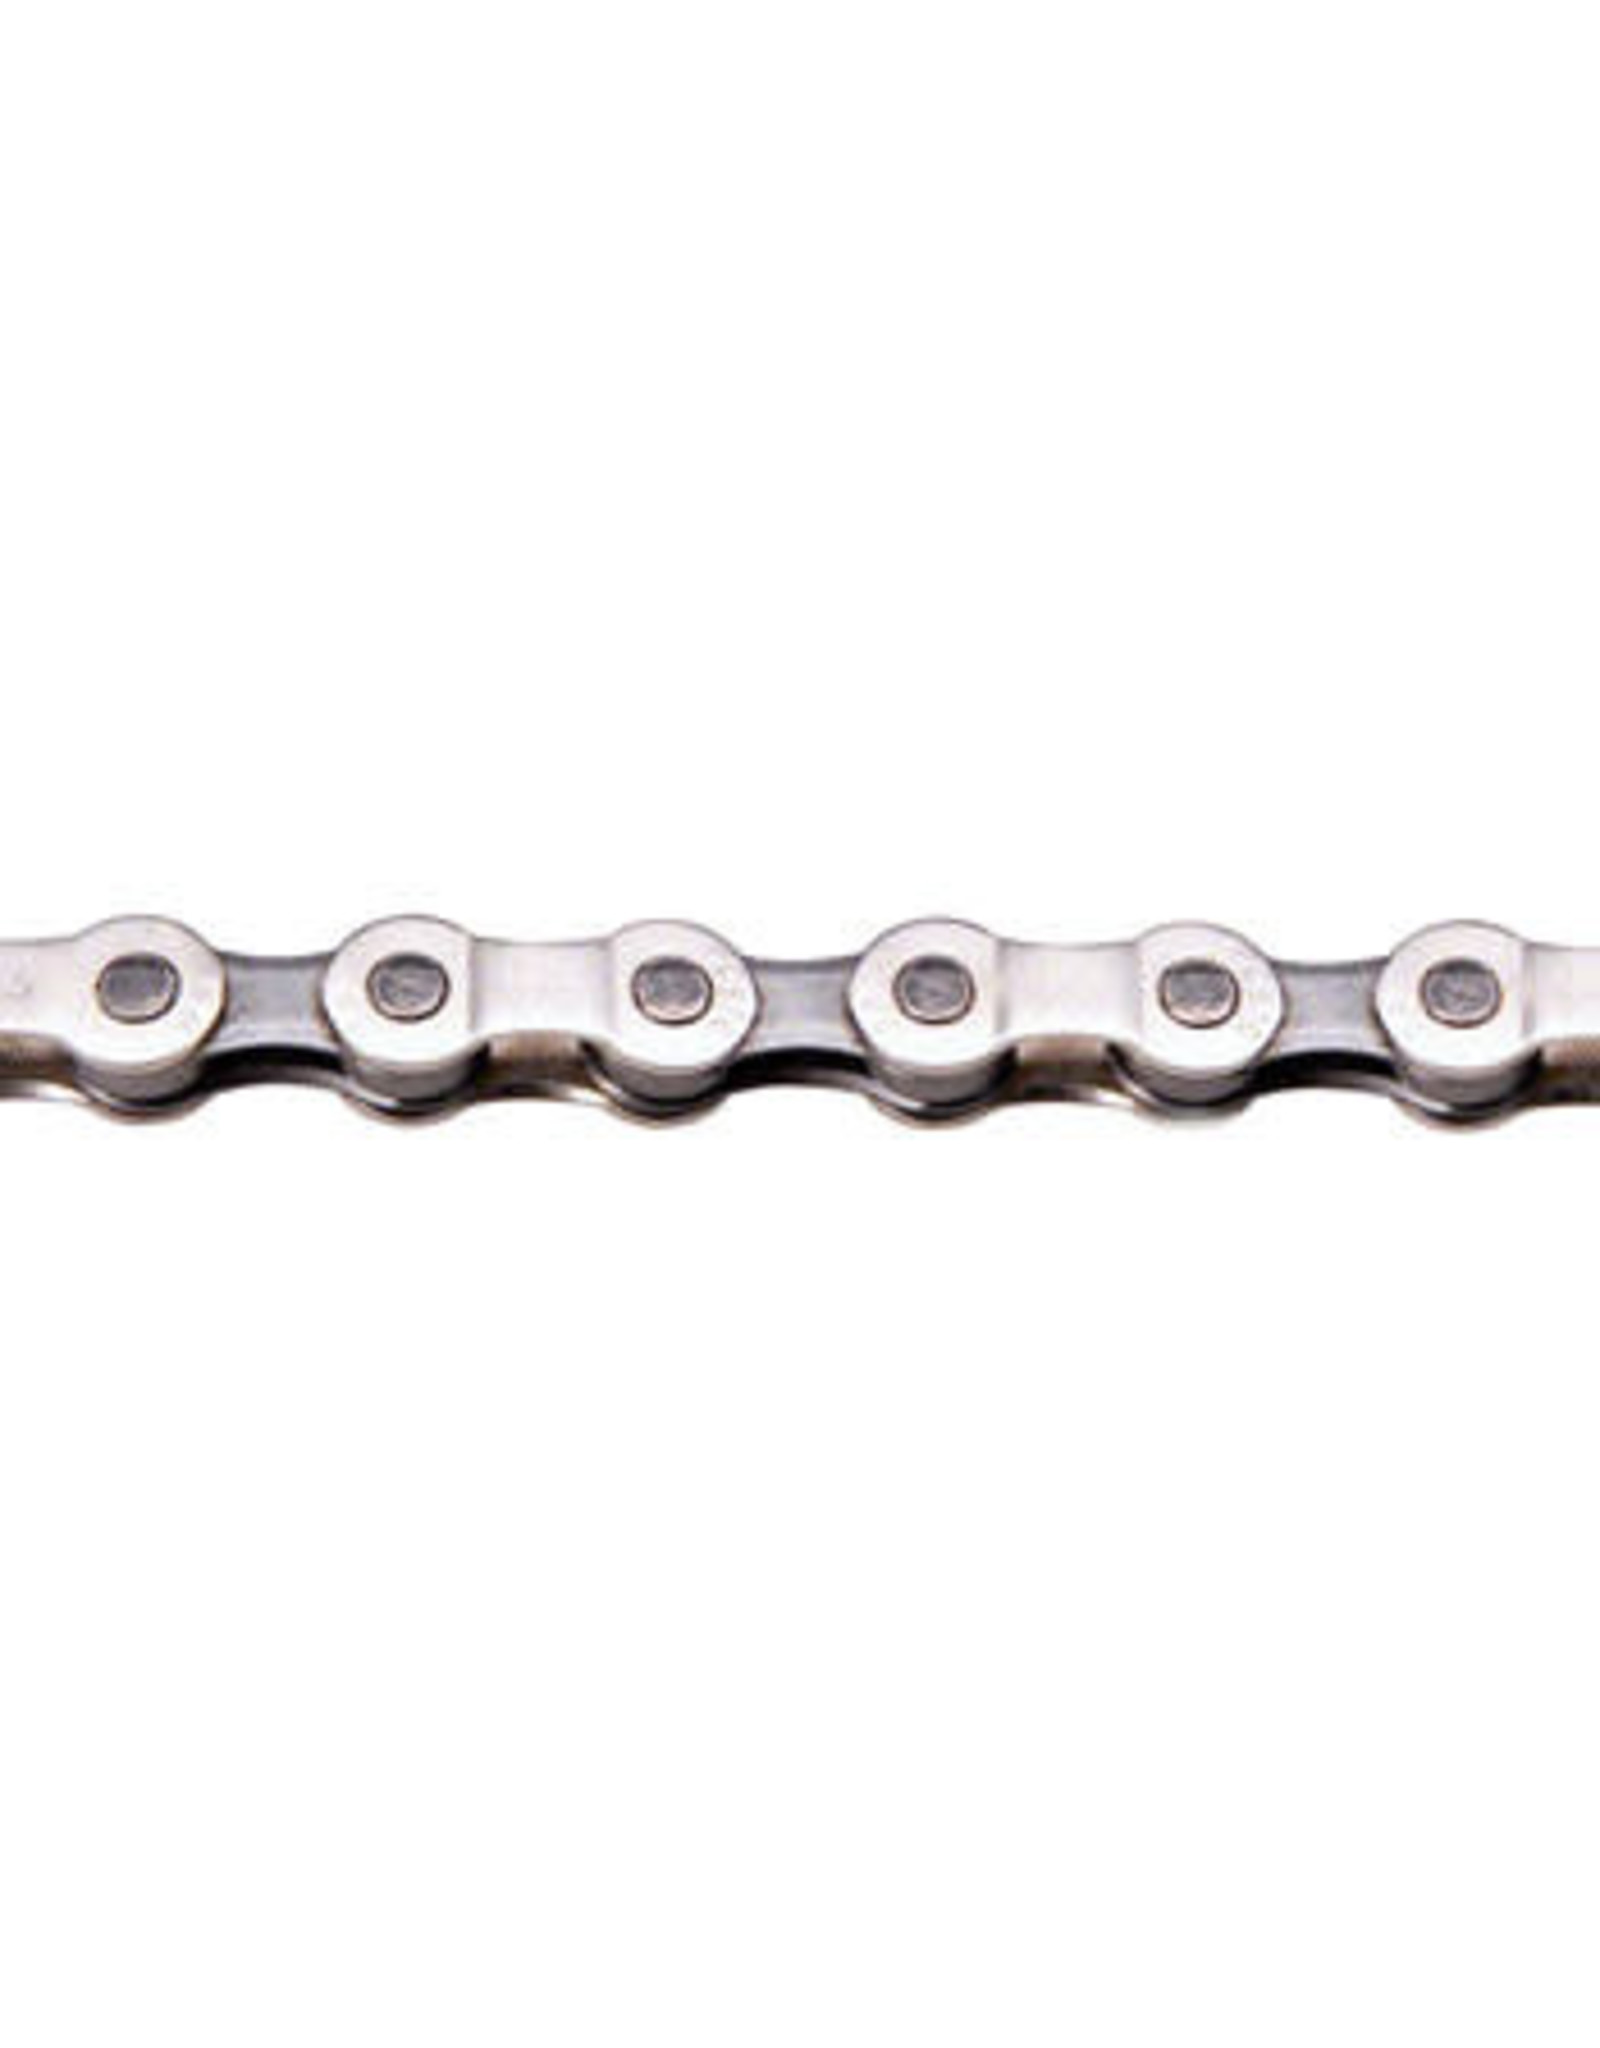 SRAM SRAM PC-870 Chain - 6, 7, 8-Speed, 114 Links, Silver